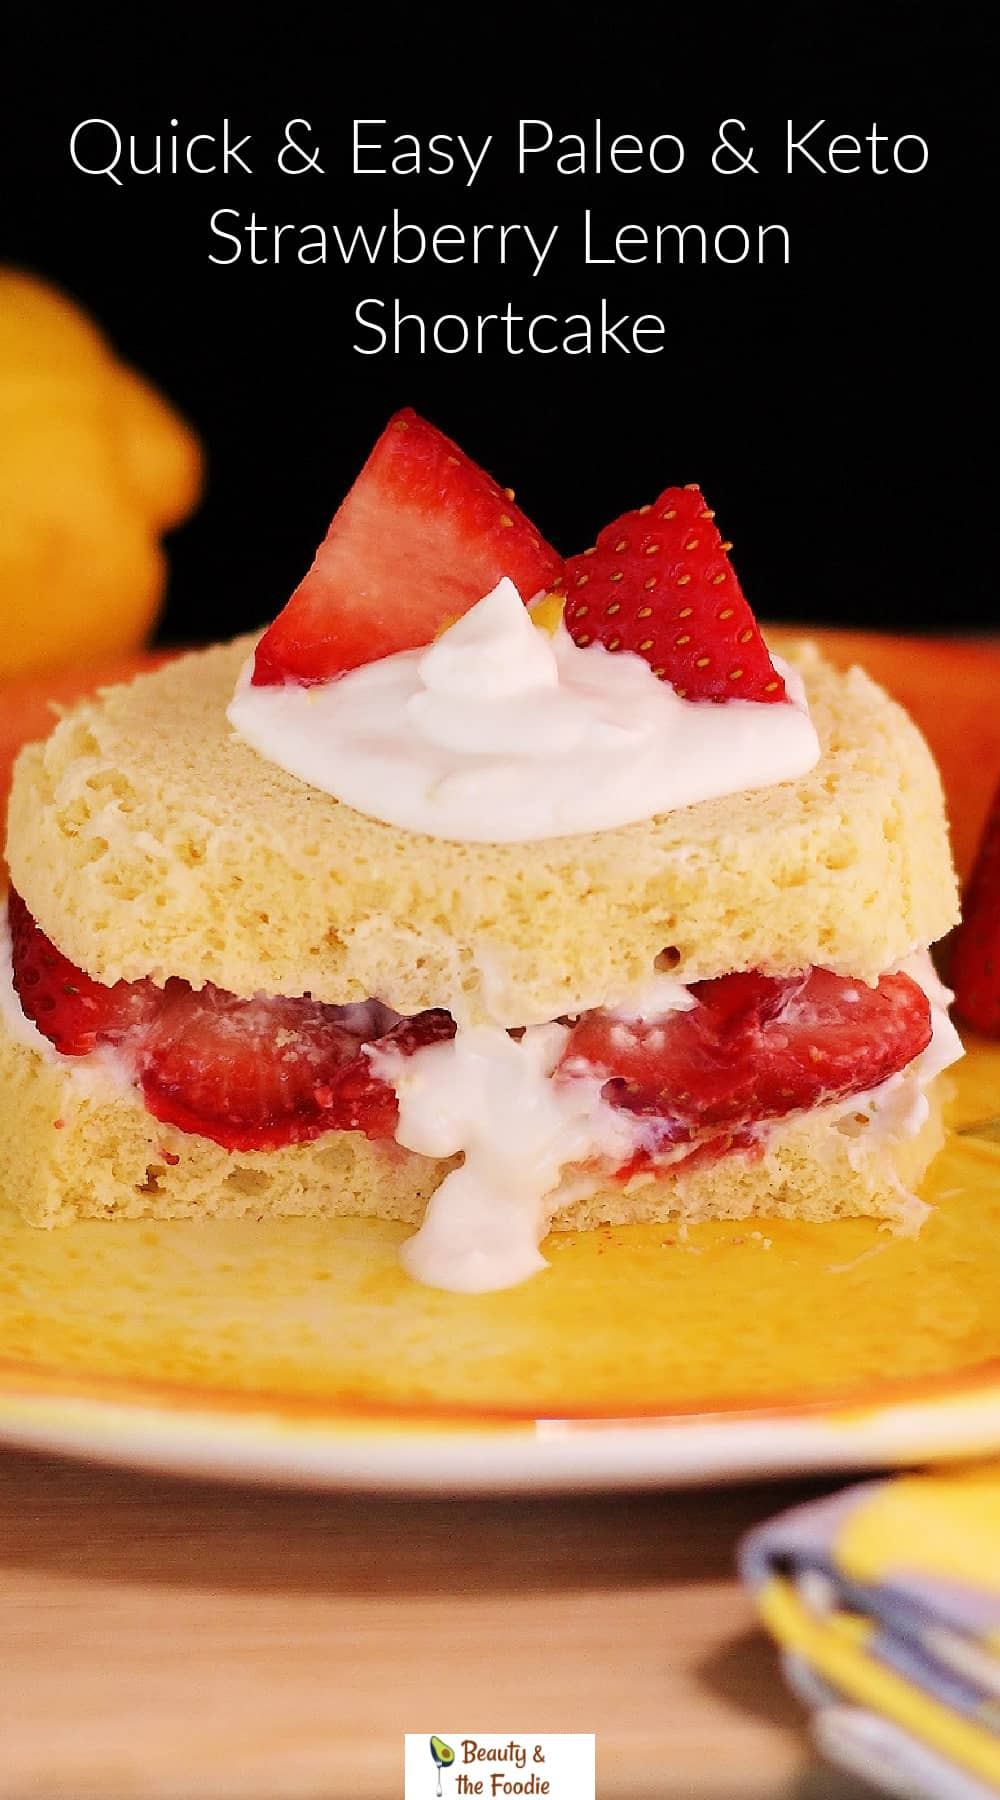 A quick & simple strawberry lemon shortcake with cream & berries.